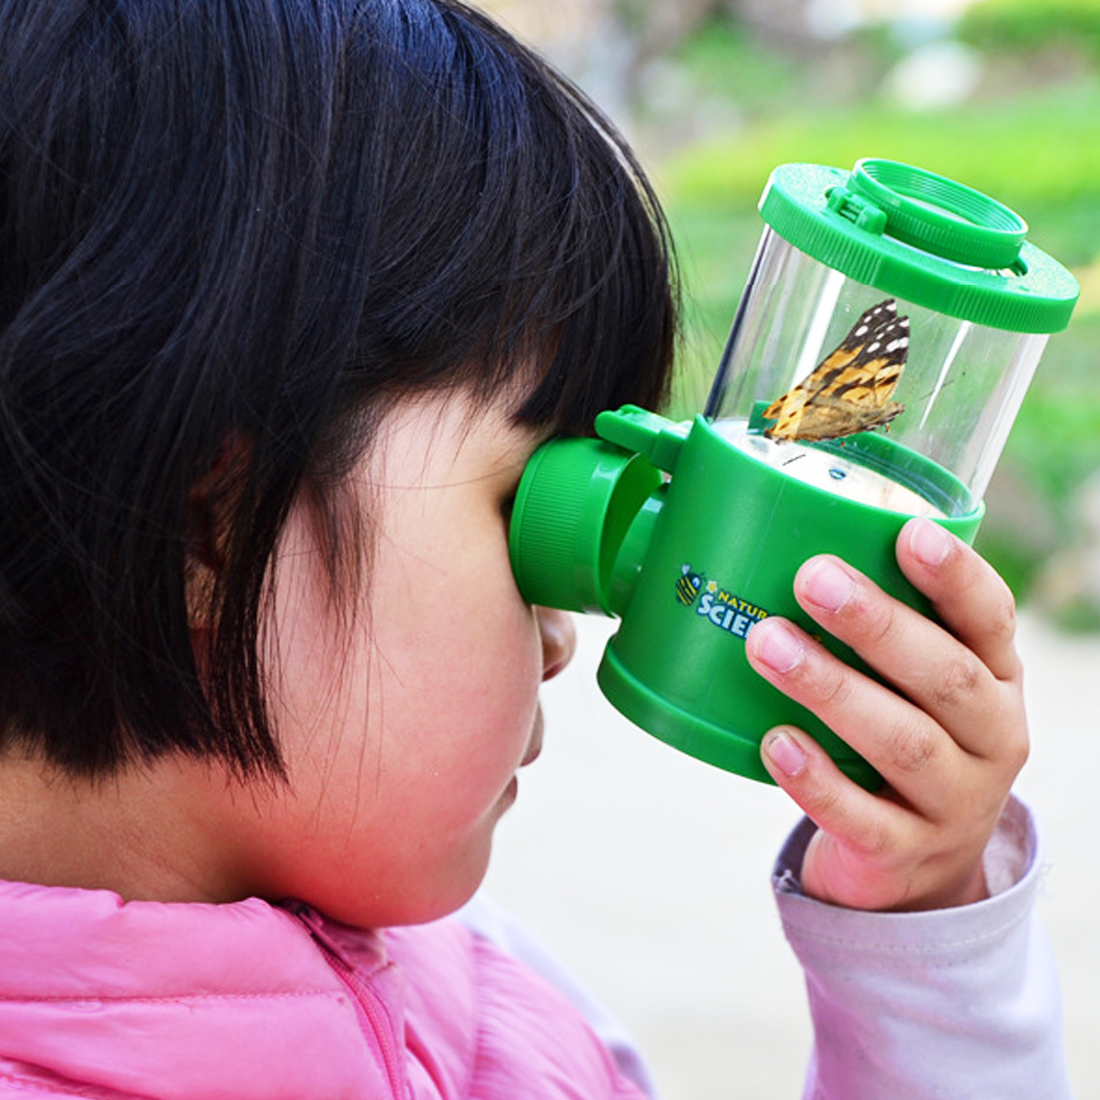 Bug Viewer Insect Magnifier Collecting Kit Children Observer Biology Kit Learning Early Development Education Toys for ChildrenBug Viewer Insect Magnifier Collecting Kit Children Observer Biology Kit Learning Early Development Education Toys for Children